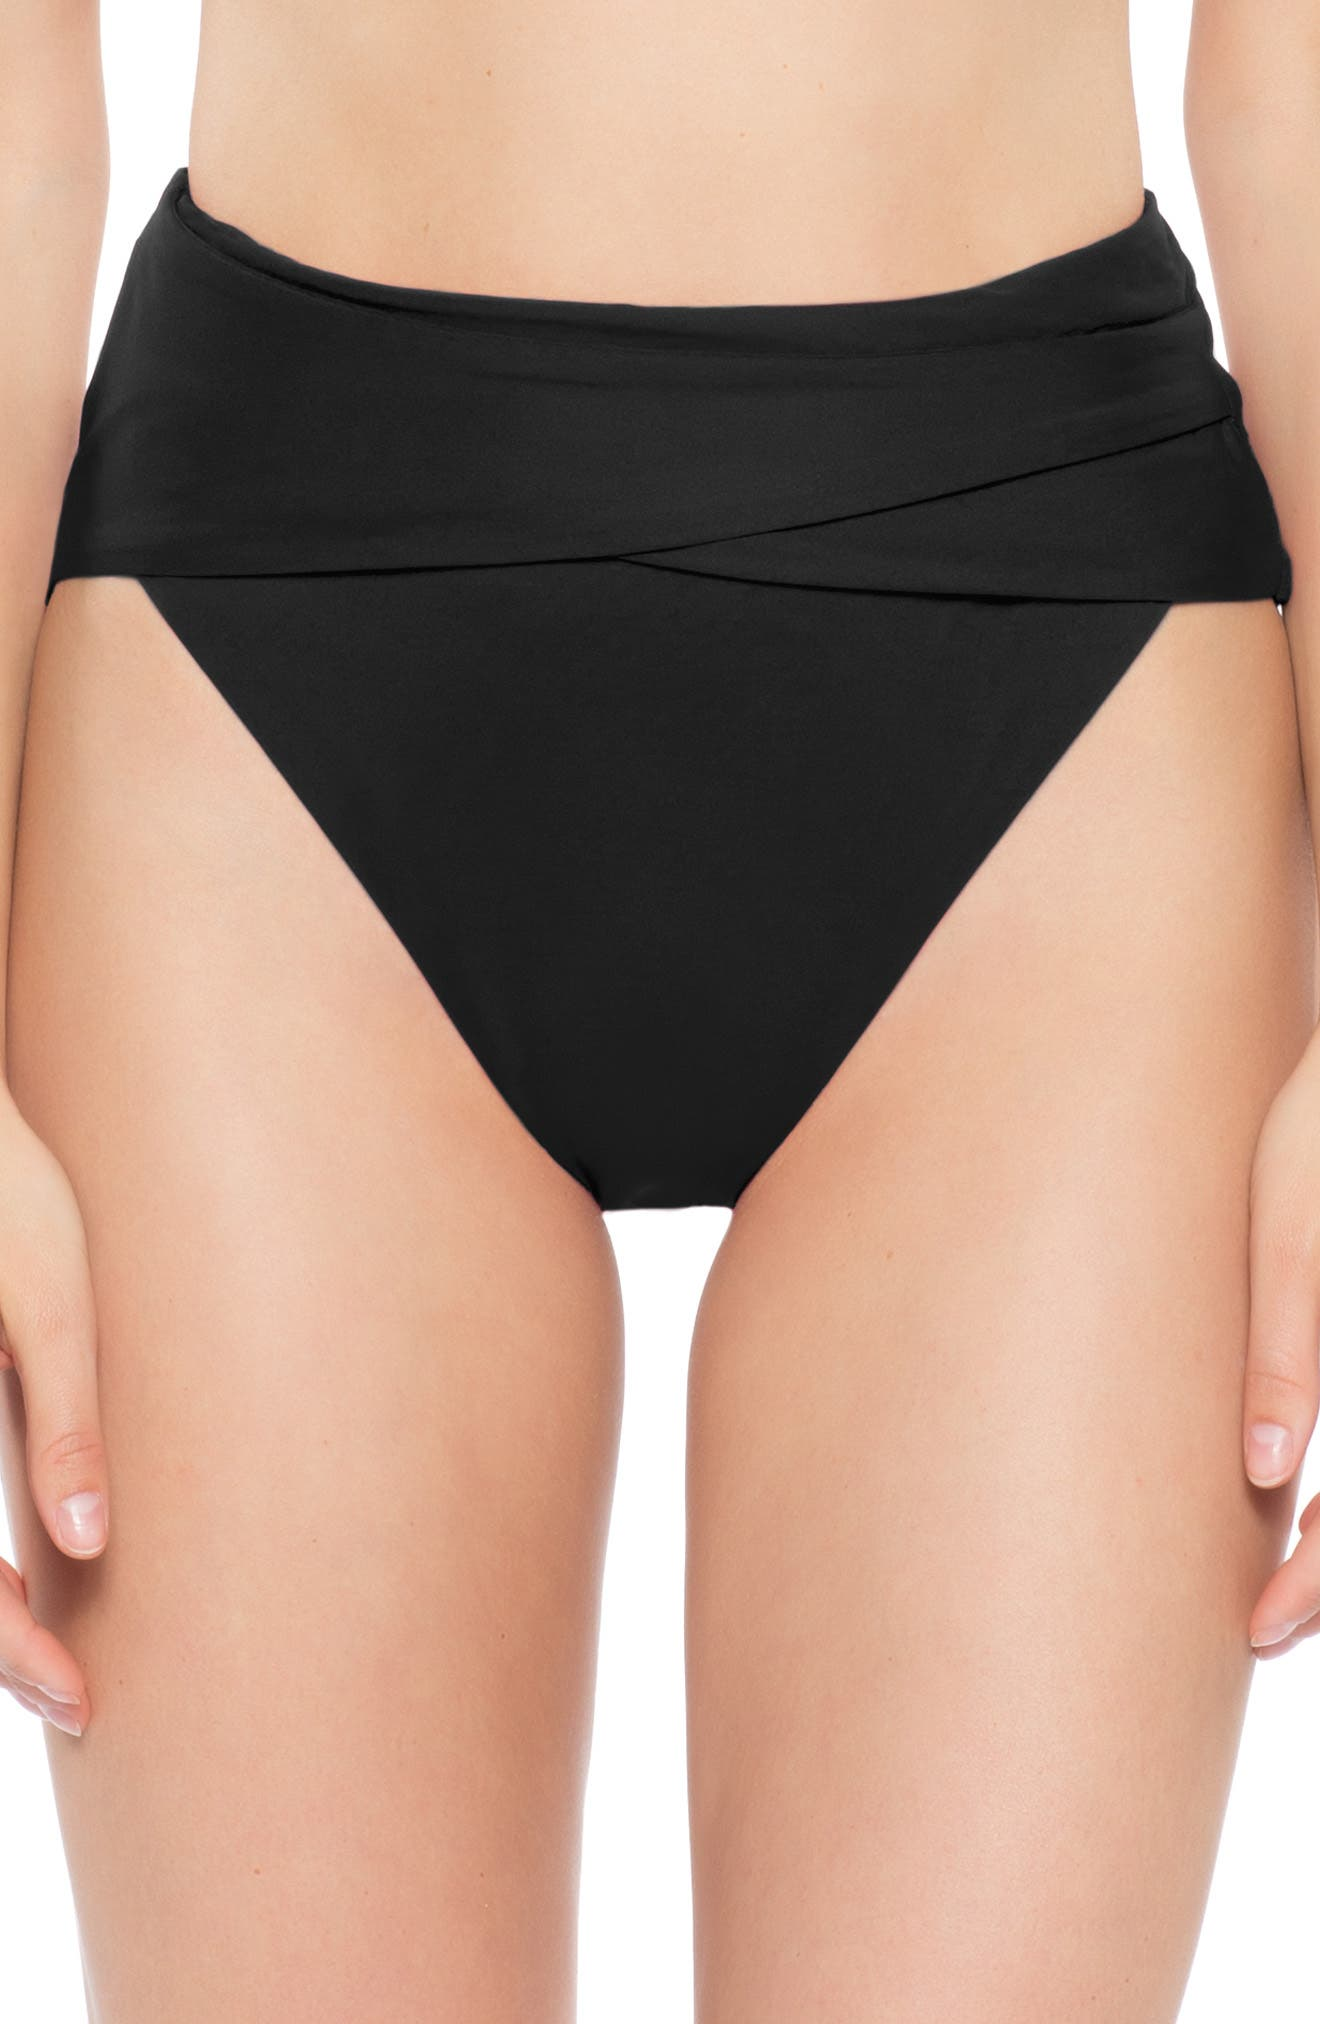 Becca Color Code Crossover High Waist Bikini Bottoms, Black